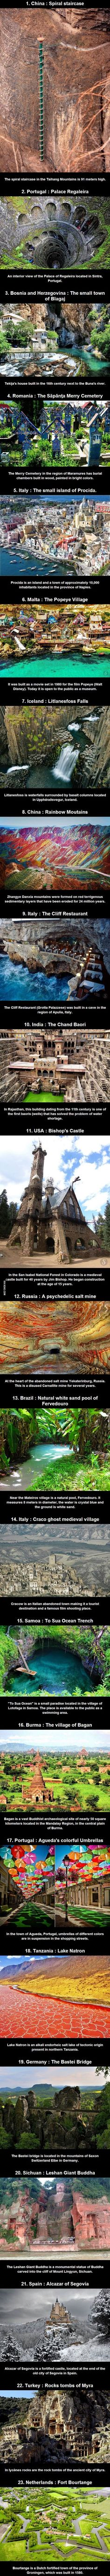 23 places to visit before dying Some of these places are pretty cool  #9